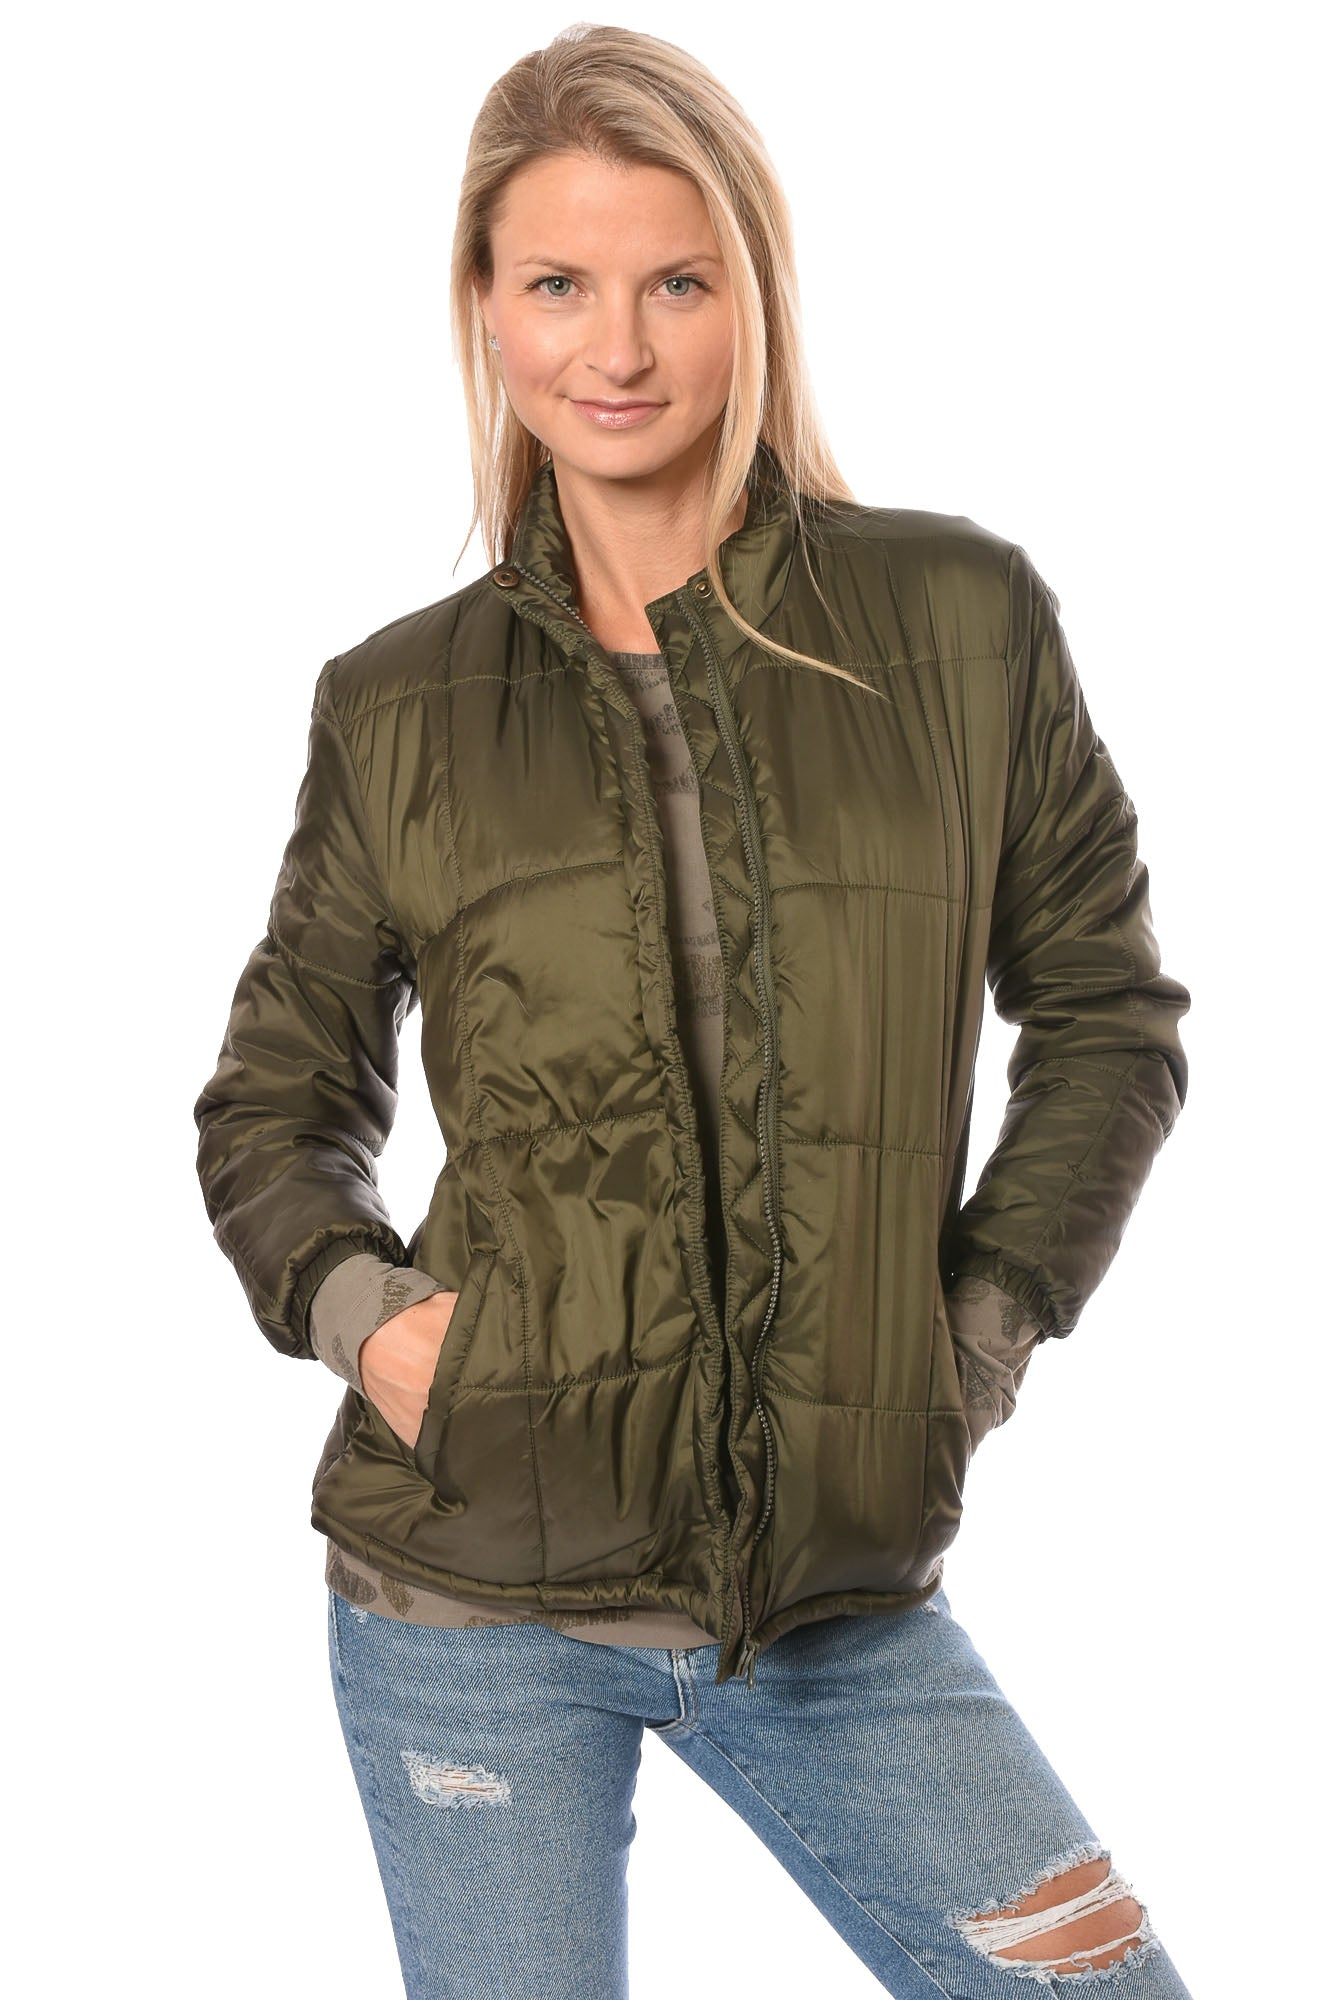 Velvet Heart Women's Tessie Convertible Travel Pillow Puffer Jacket (Style 3IJ-4530, Olive) by Velvet Heart